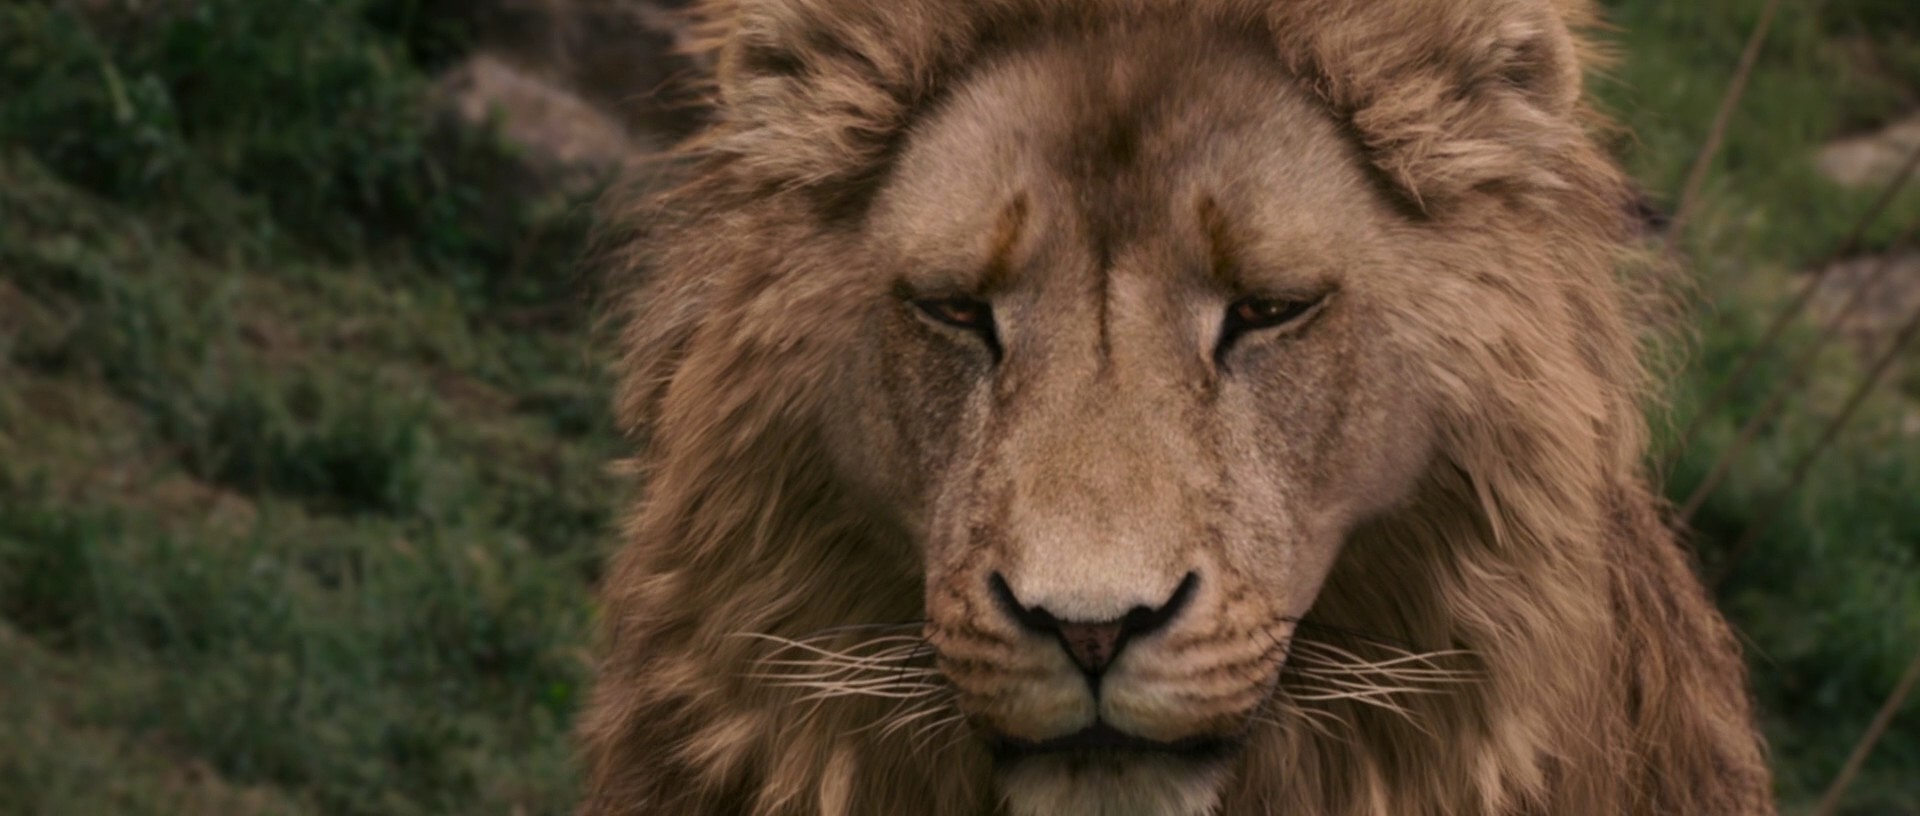 The Chronicles Of Narnia Images The Chronicles Of Narnia The Lion